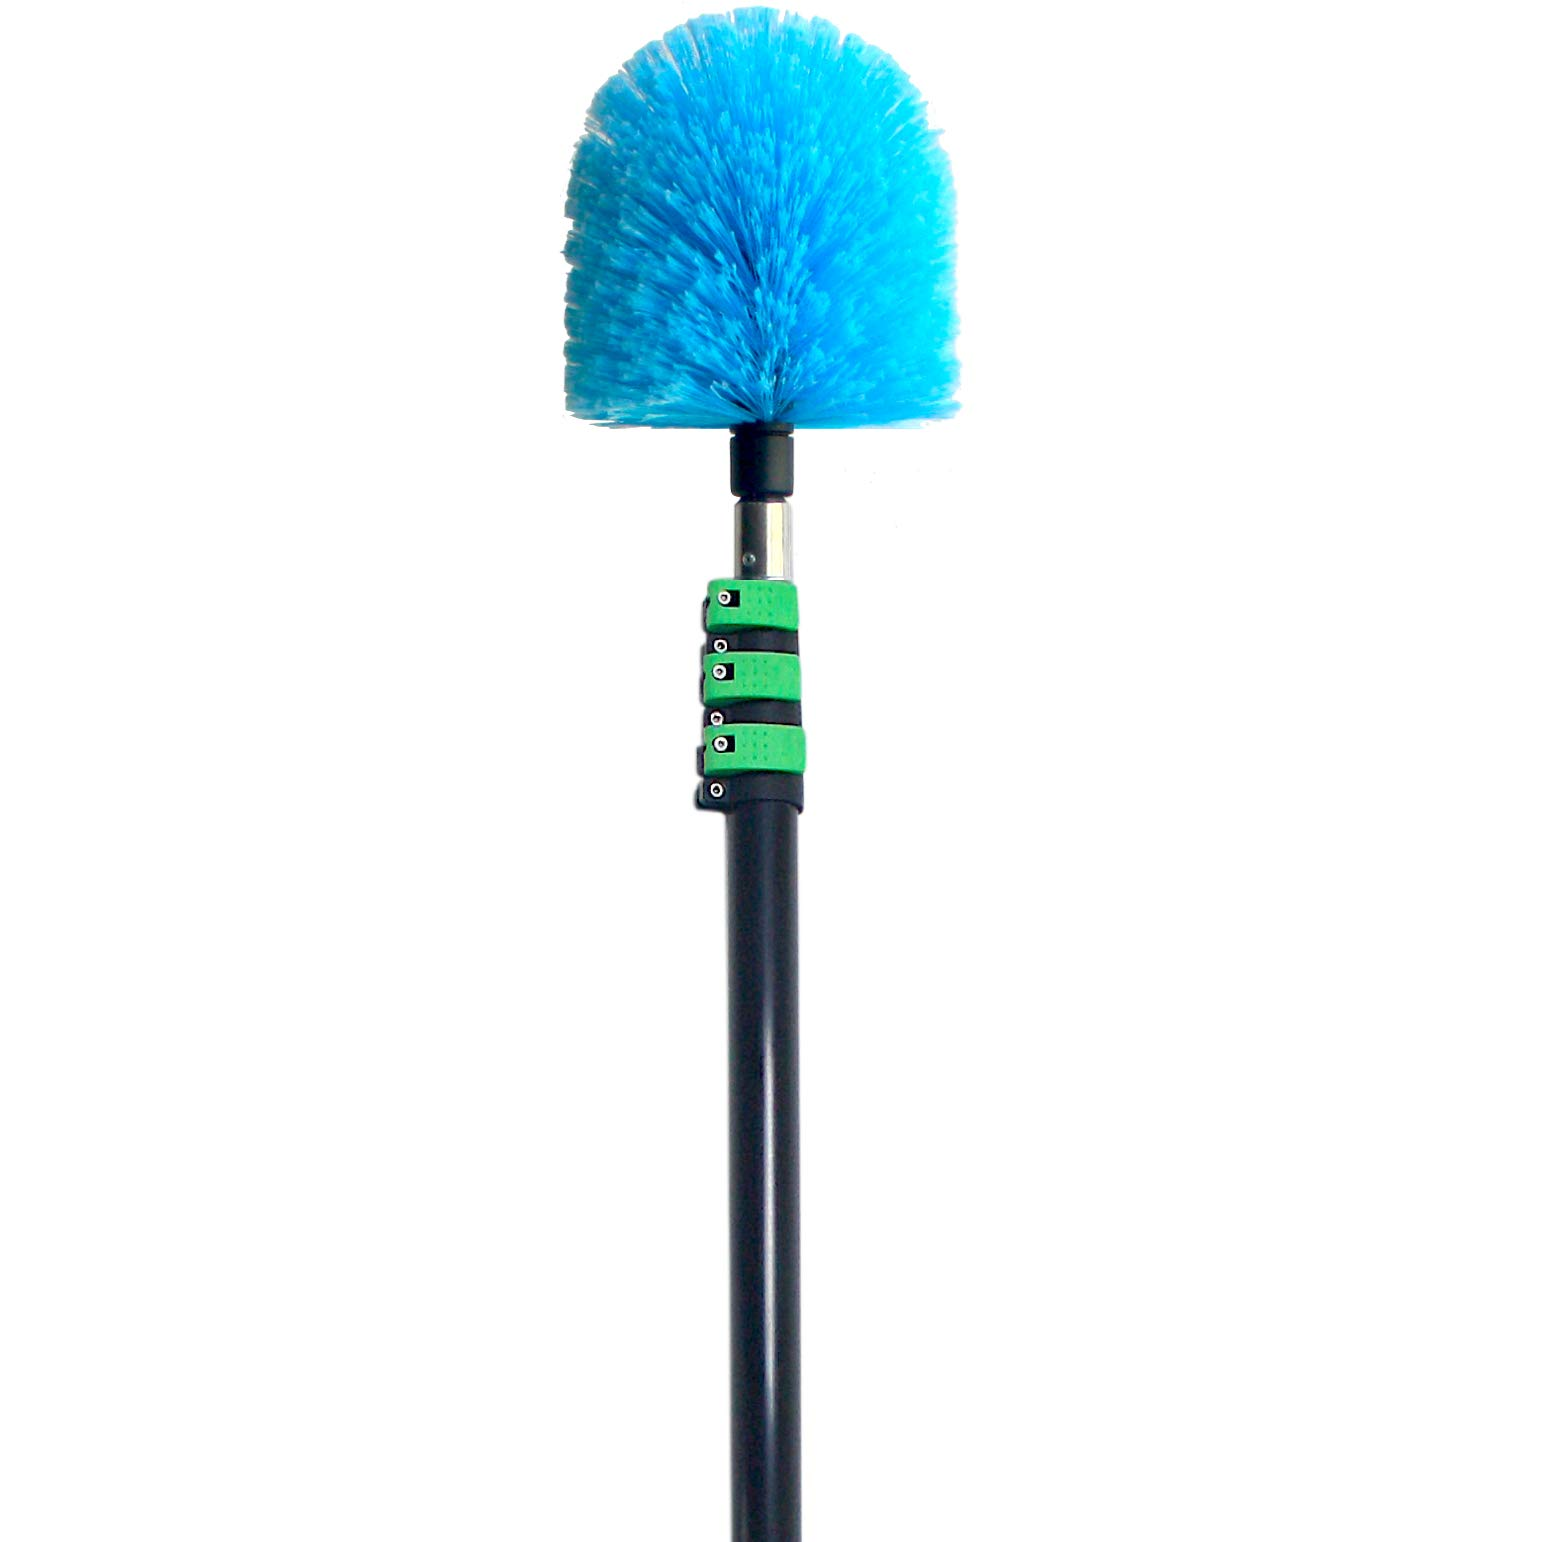 EVERSPROUT 7-to-25 Foot Cobweb Duster and Extension-Pole Combo (30 Ft. Reach, Soft Bristles) | Hand Packaged | Heavy-Duty, 4-Stage Aluminum Pole | Indoor & Outdoor Use Brush Attachment